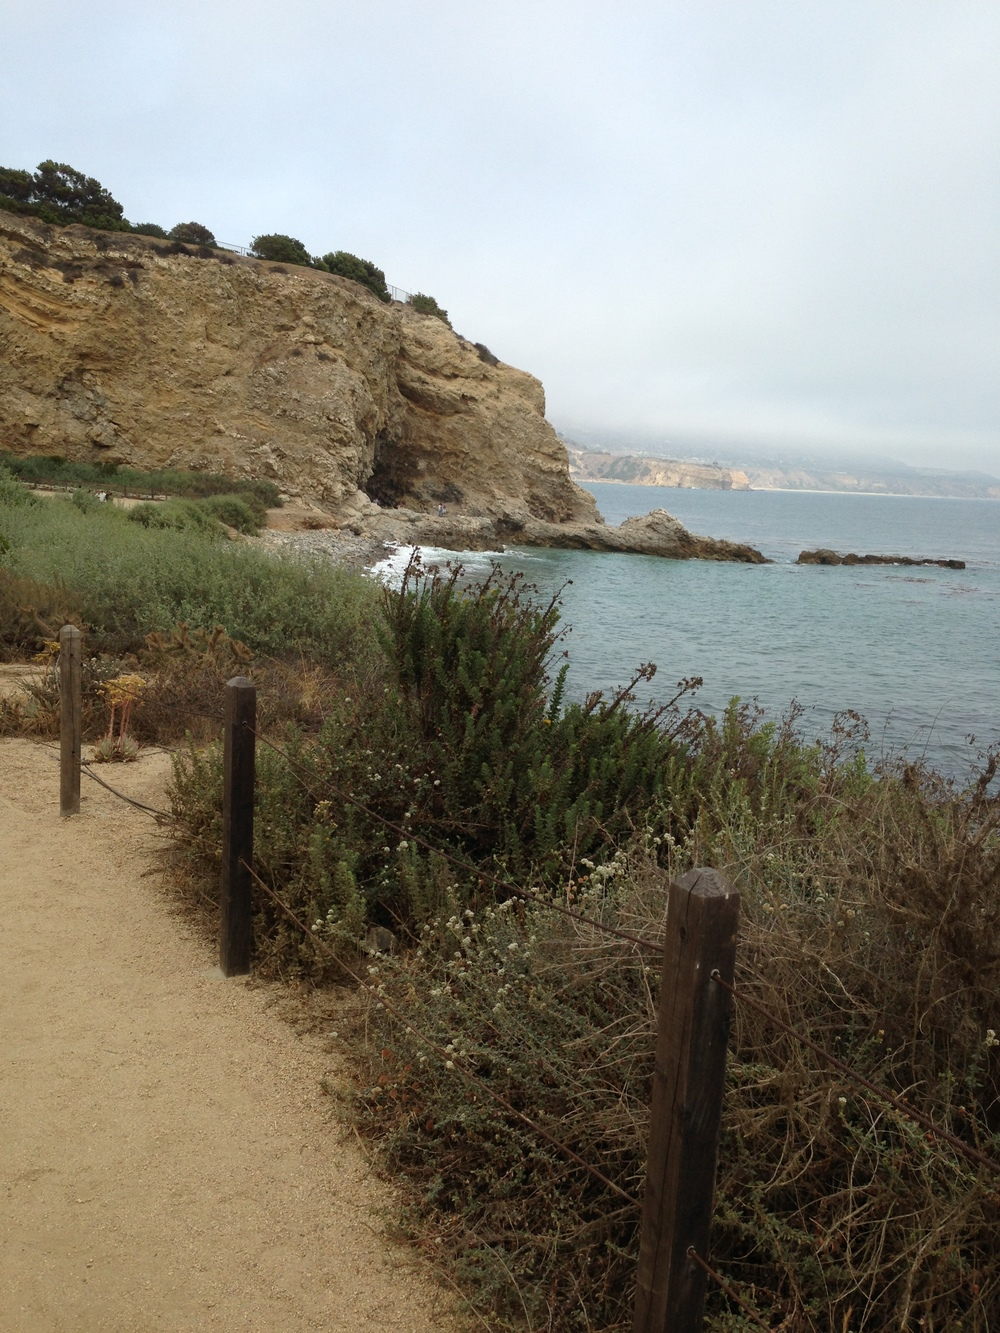 Ocean, rocky cliff, pebbled walk way ---- Loving SOCAL!